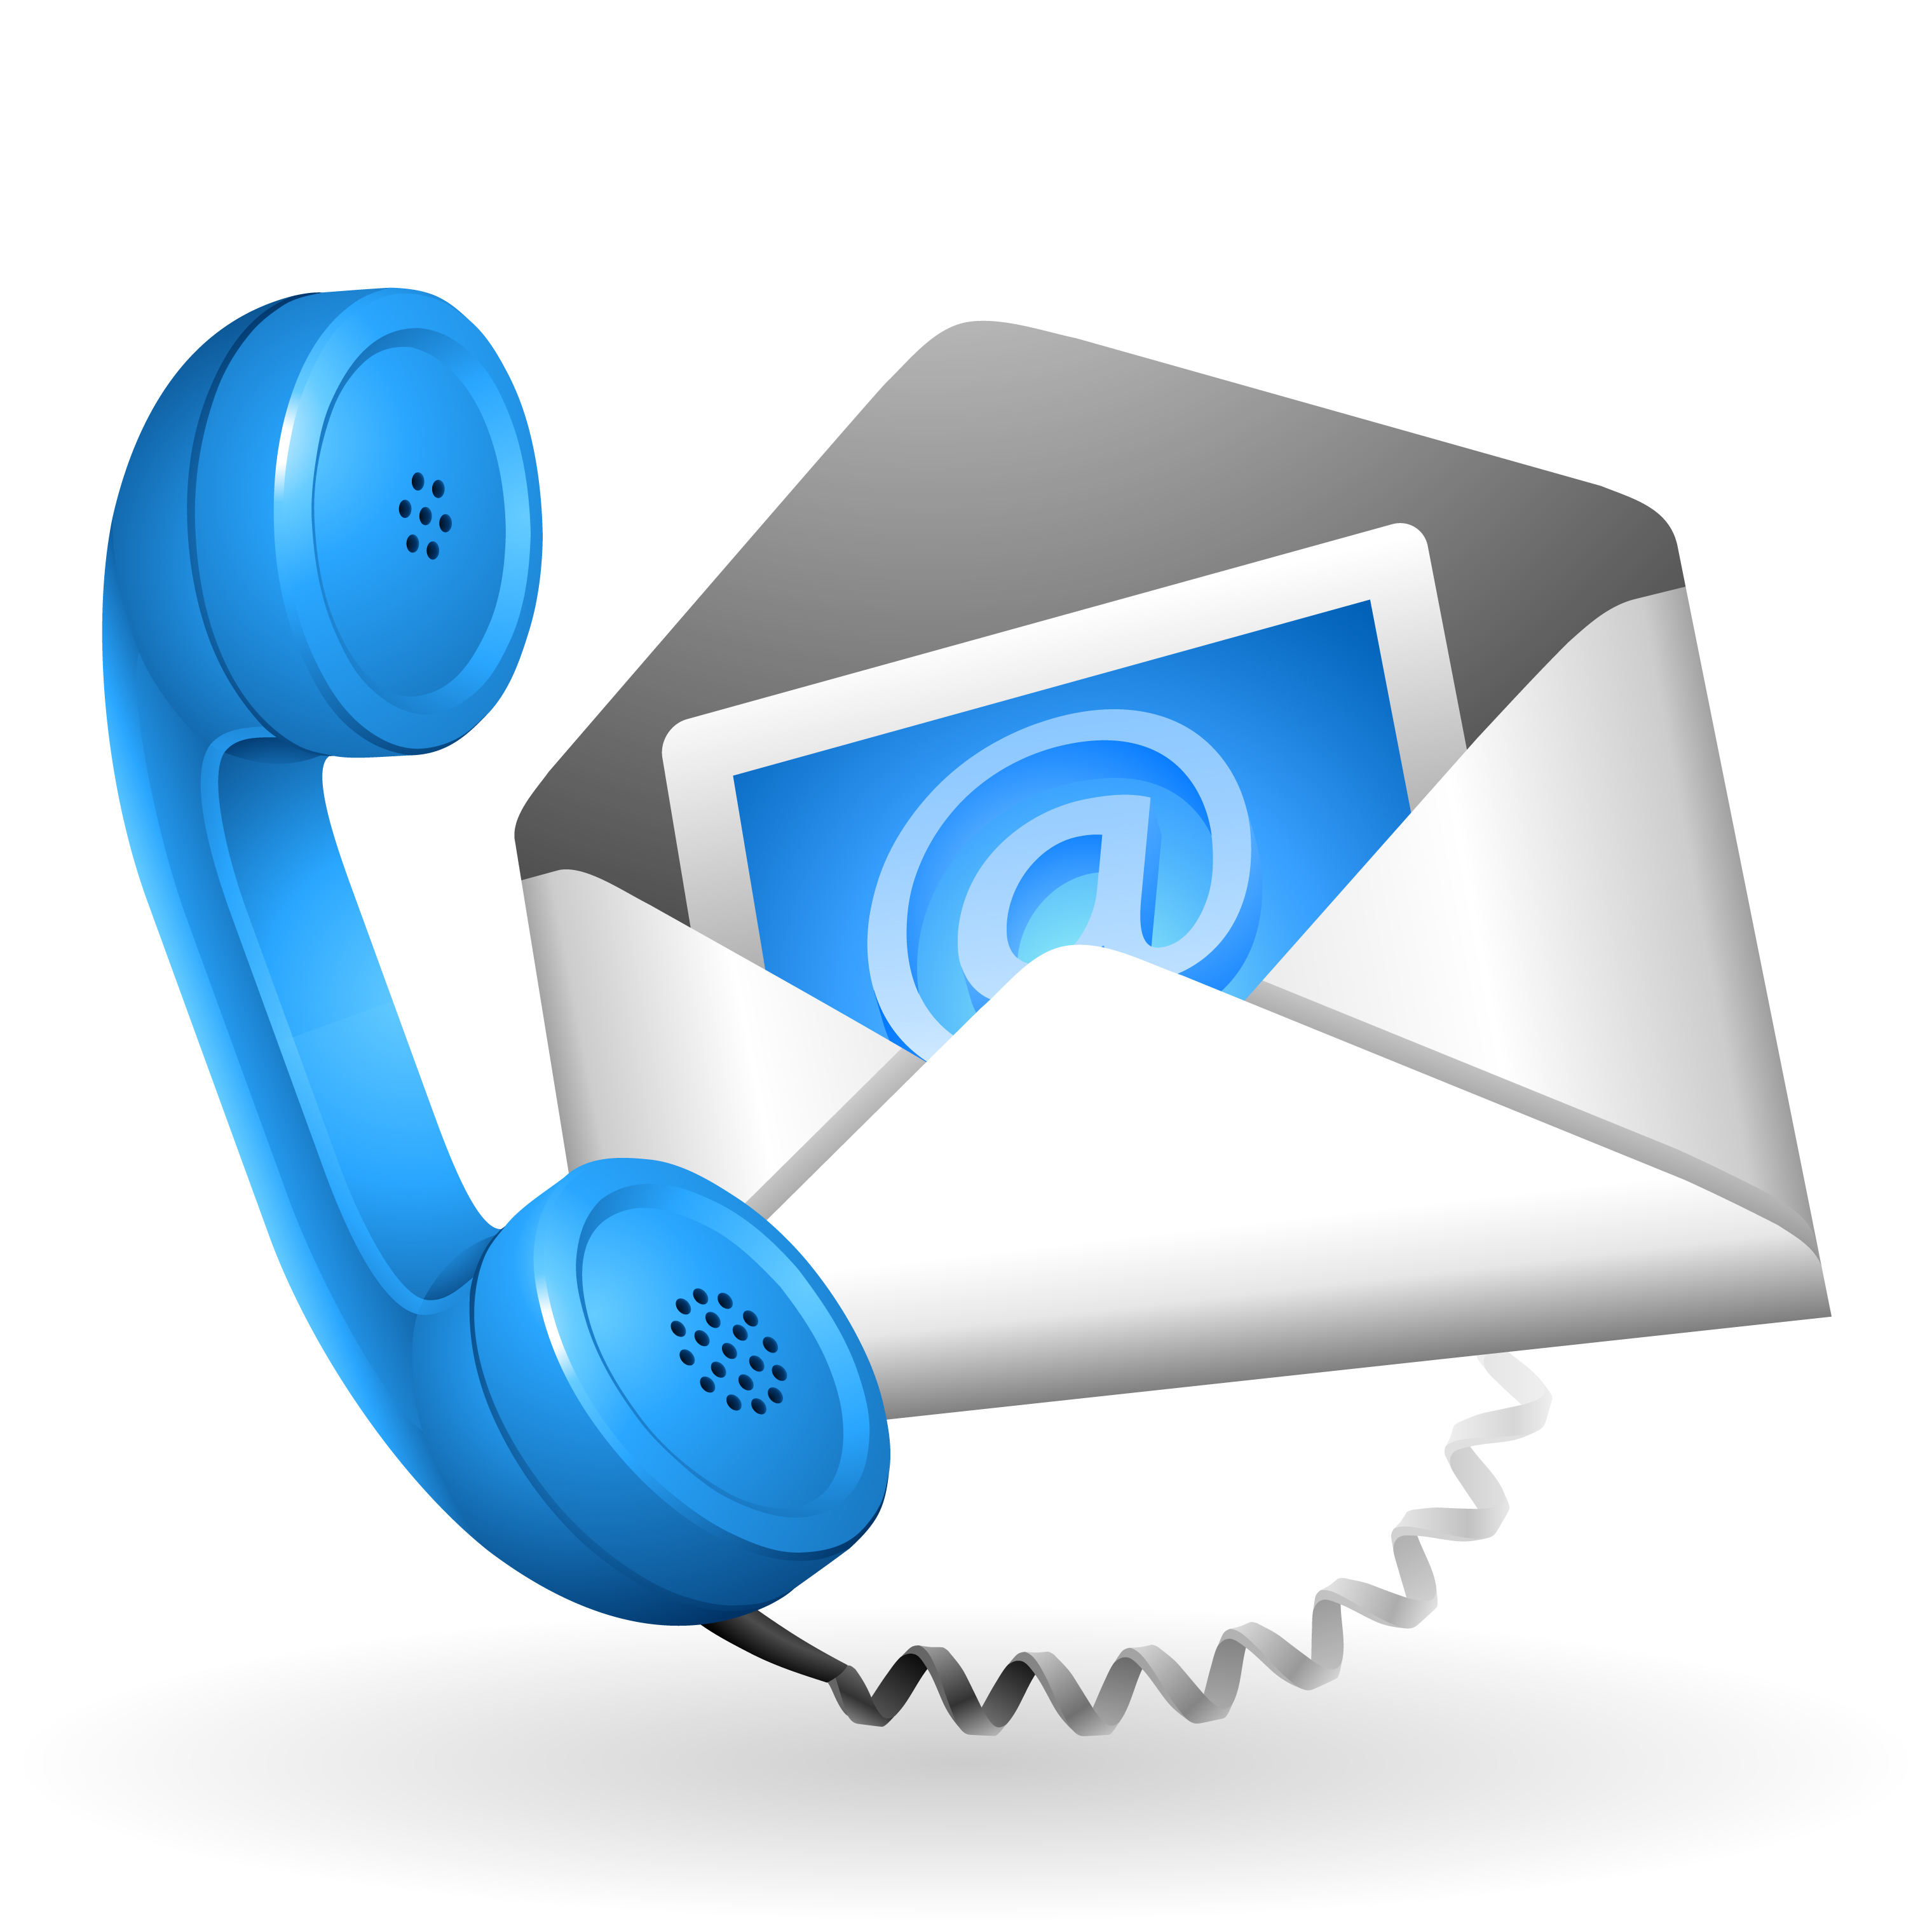 Free Contact Information Cliparts, Download Free Clip Art, Free Clip.